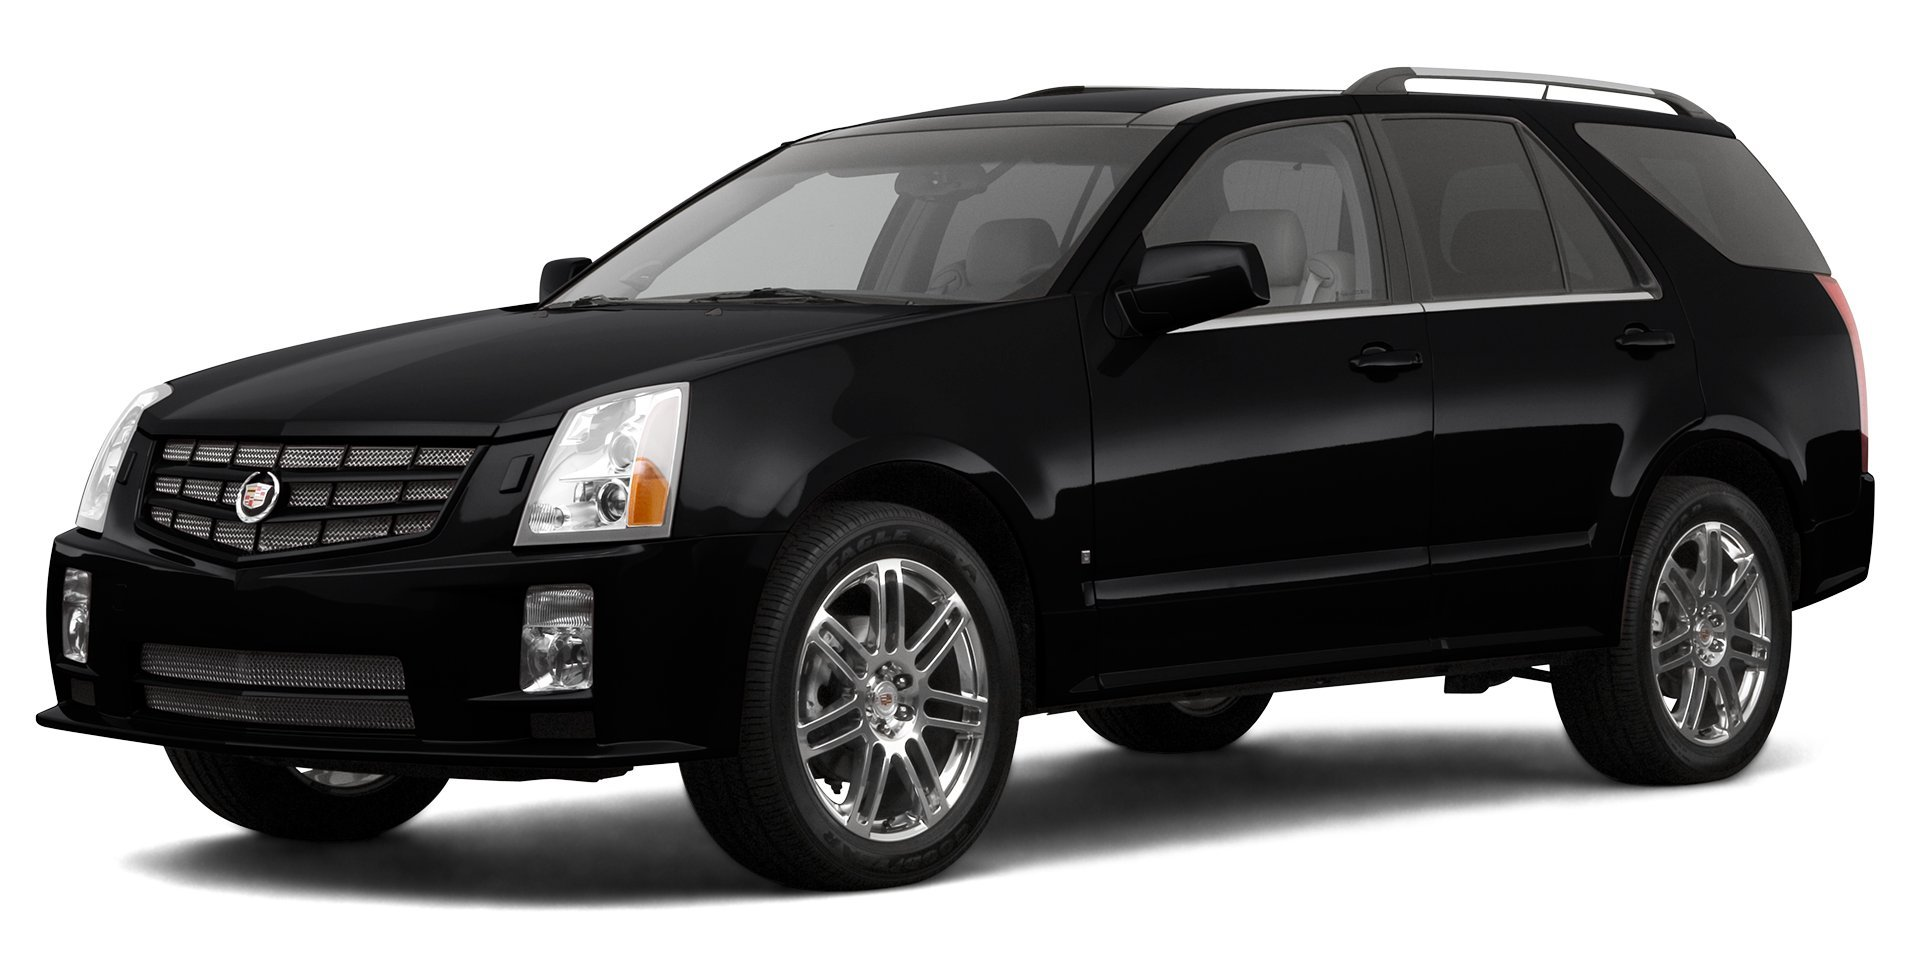 suv review best buy auto buys escalade cadillac consumer guide